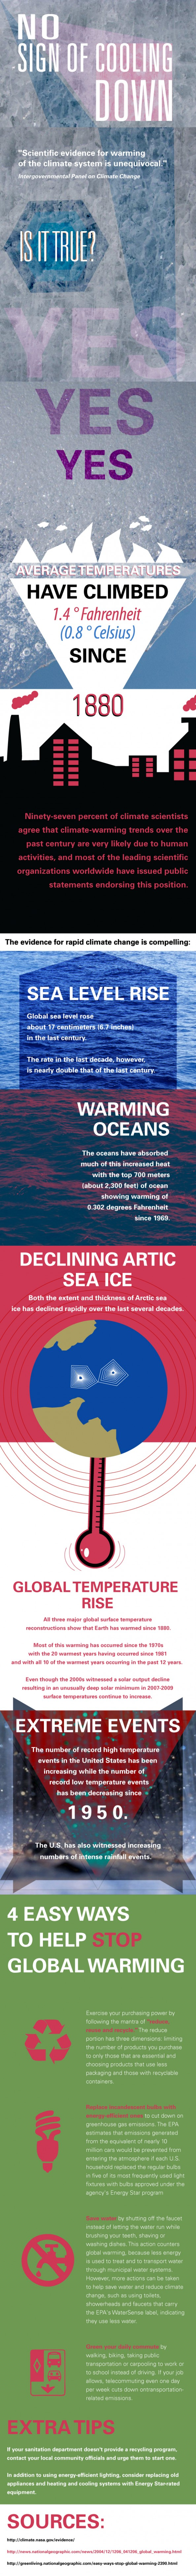 No Sign Of Cooling Down Infographic Cool Stuff Climate Change Infographic